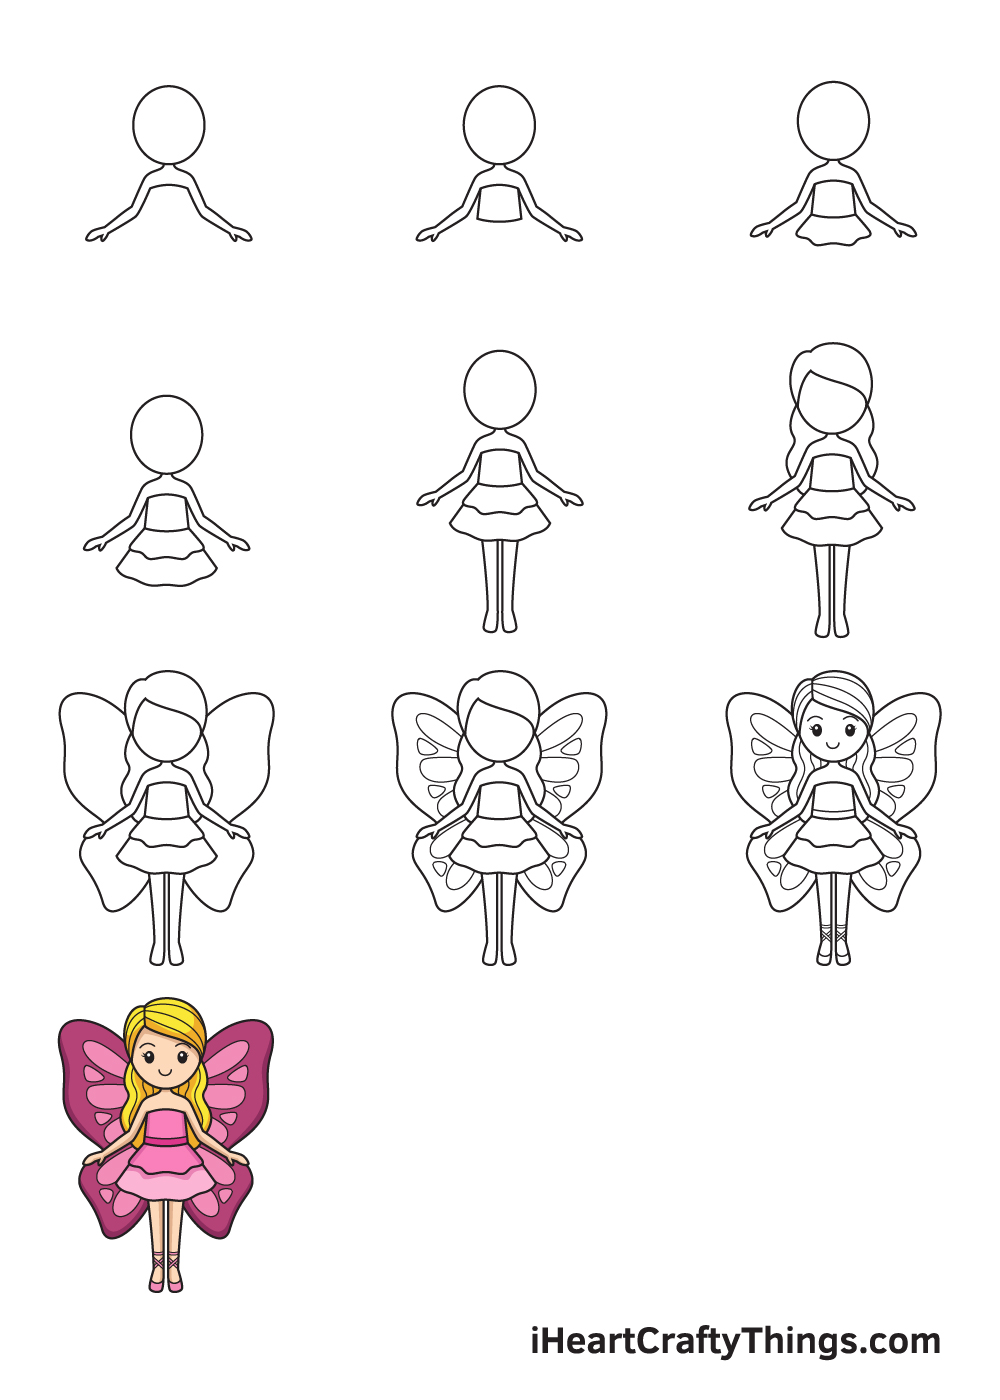 Drawing Fairy in 9 Easy Steps